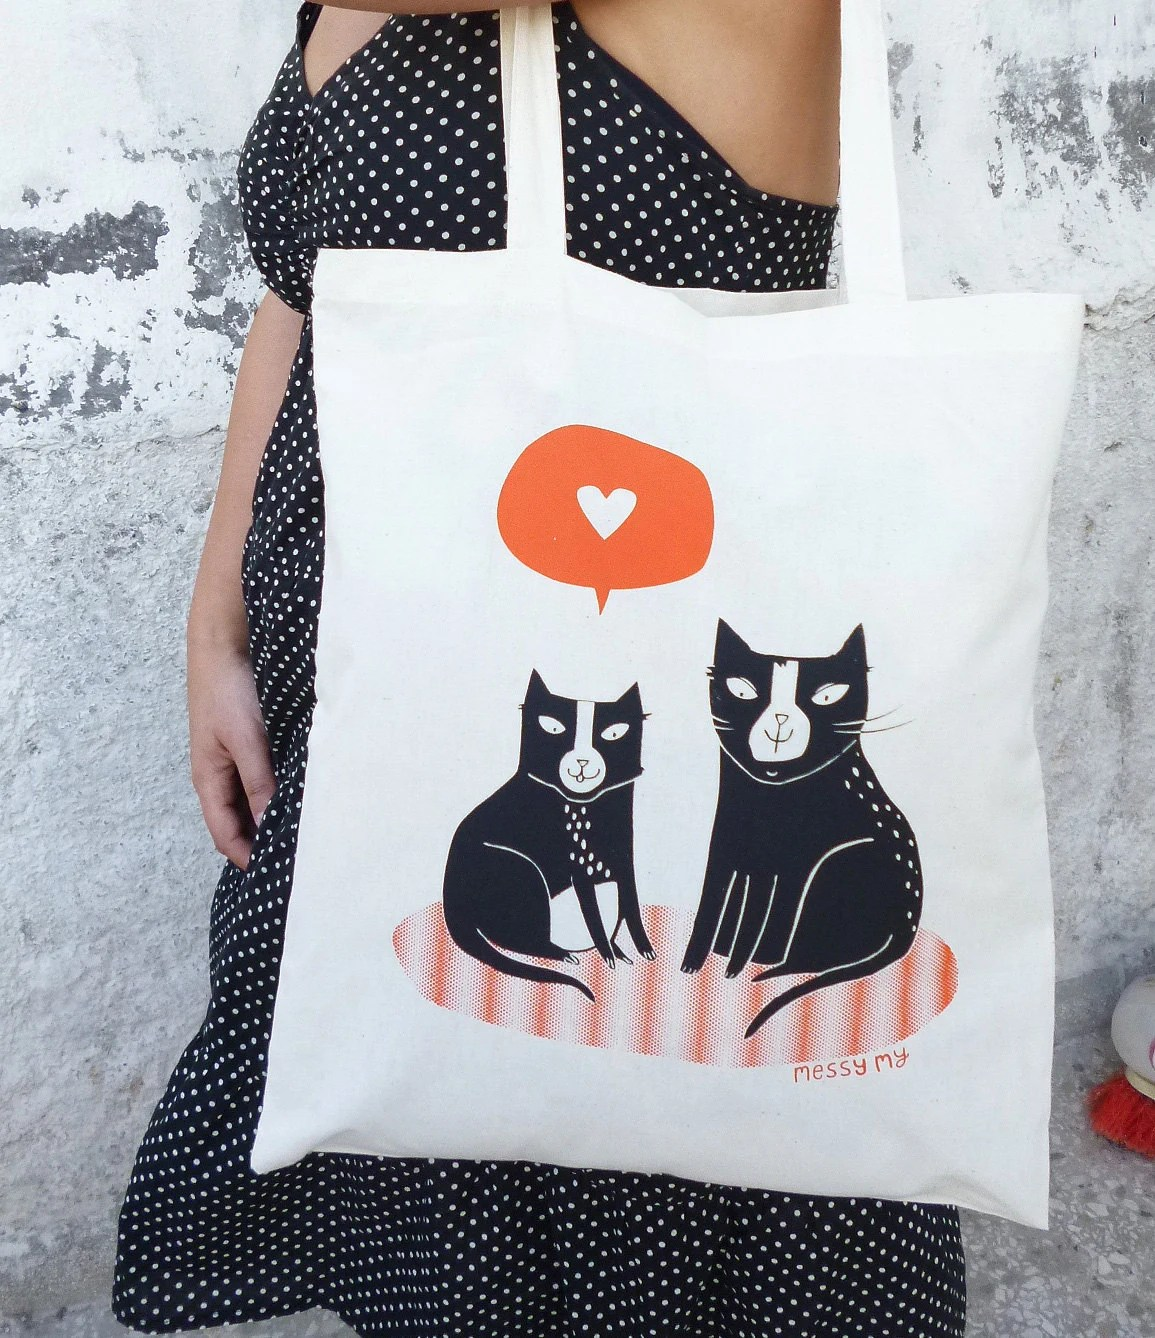 Love Cats Tote bag - (limited edition) - messymai